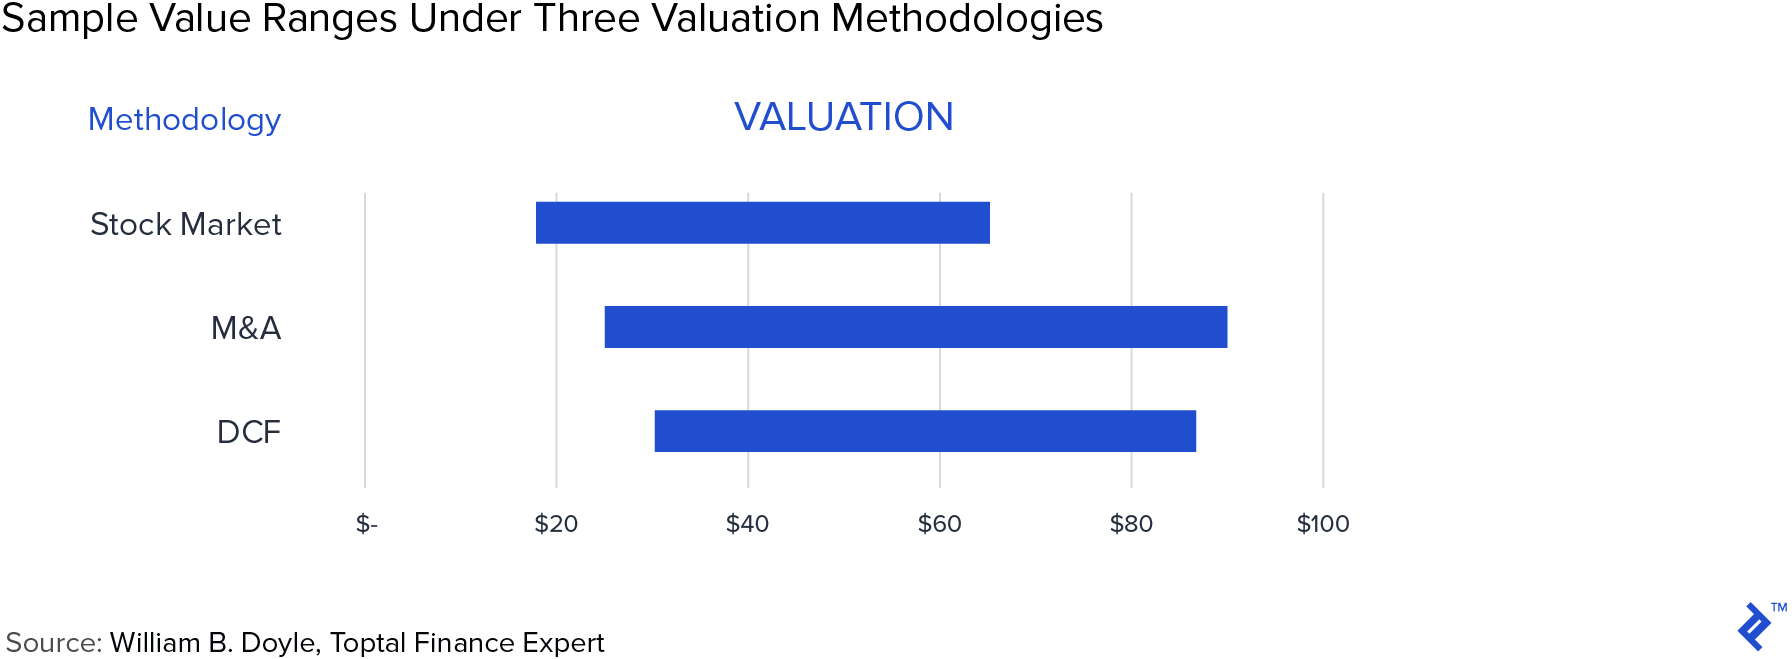 Sample value ranges under three valuation methodologies